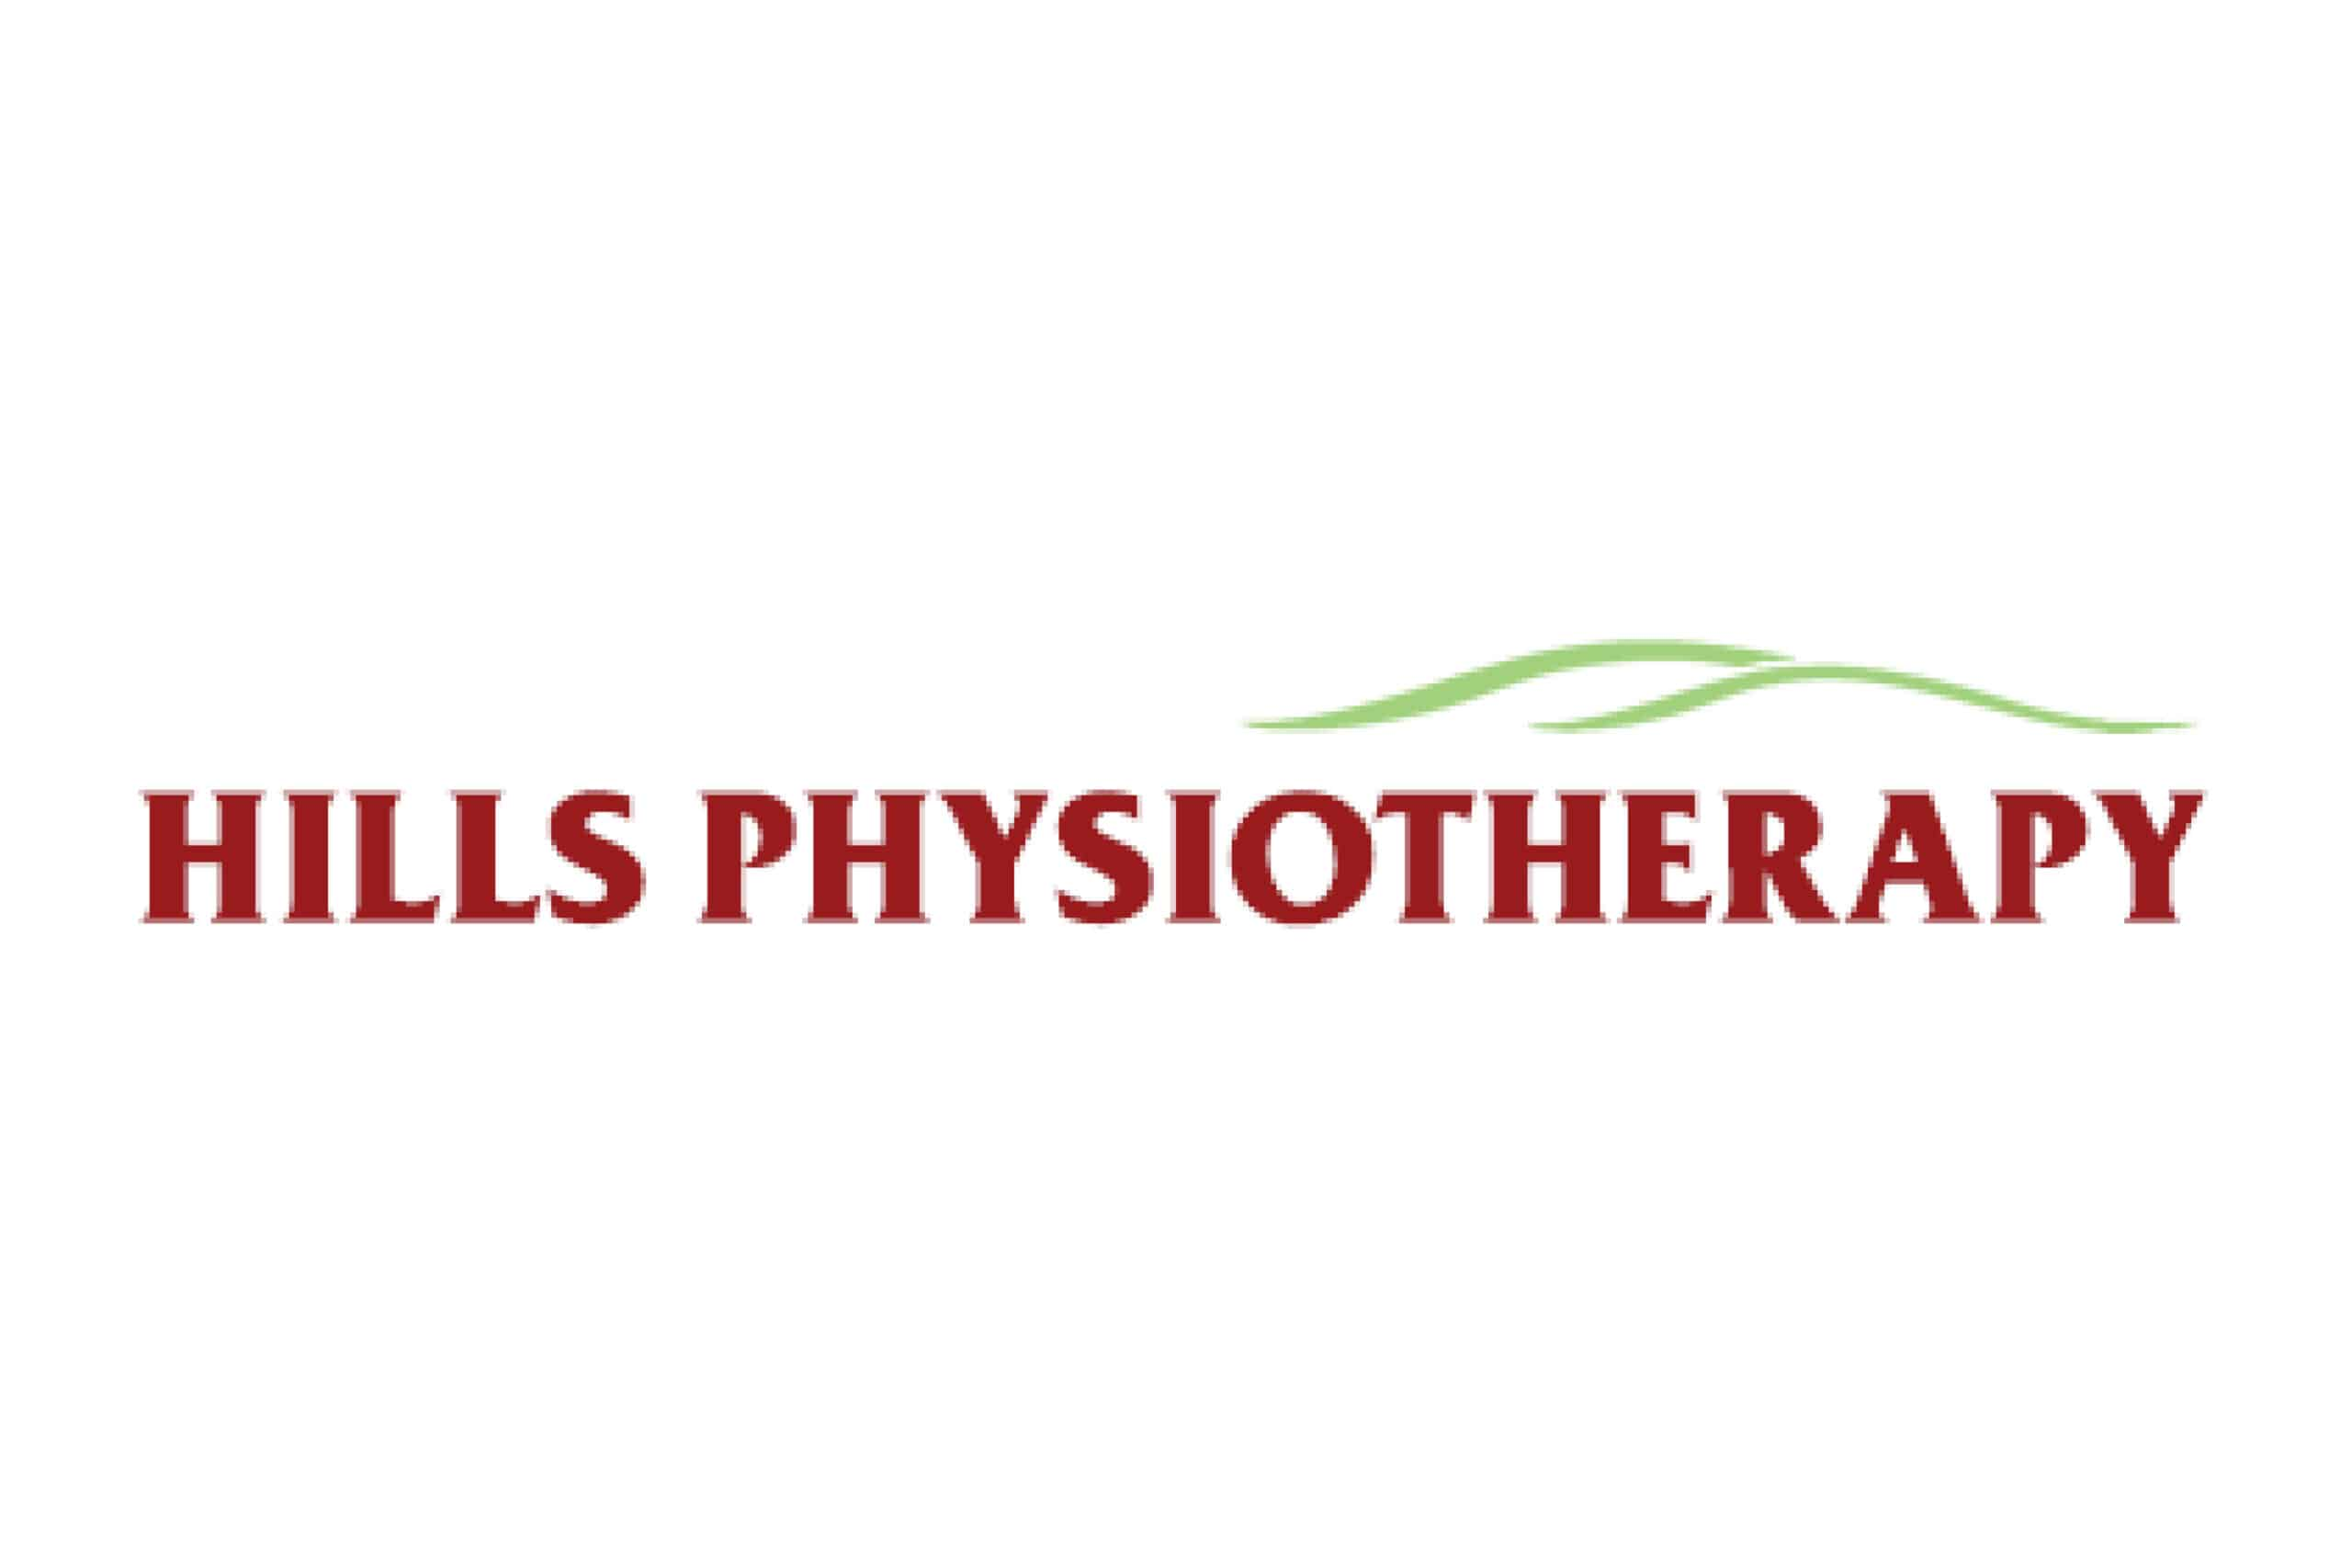 Hills Physiotherapy